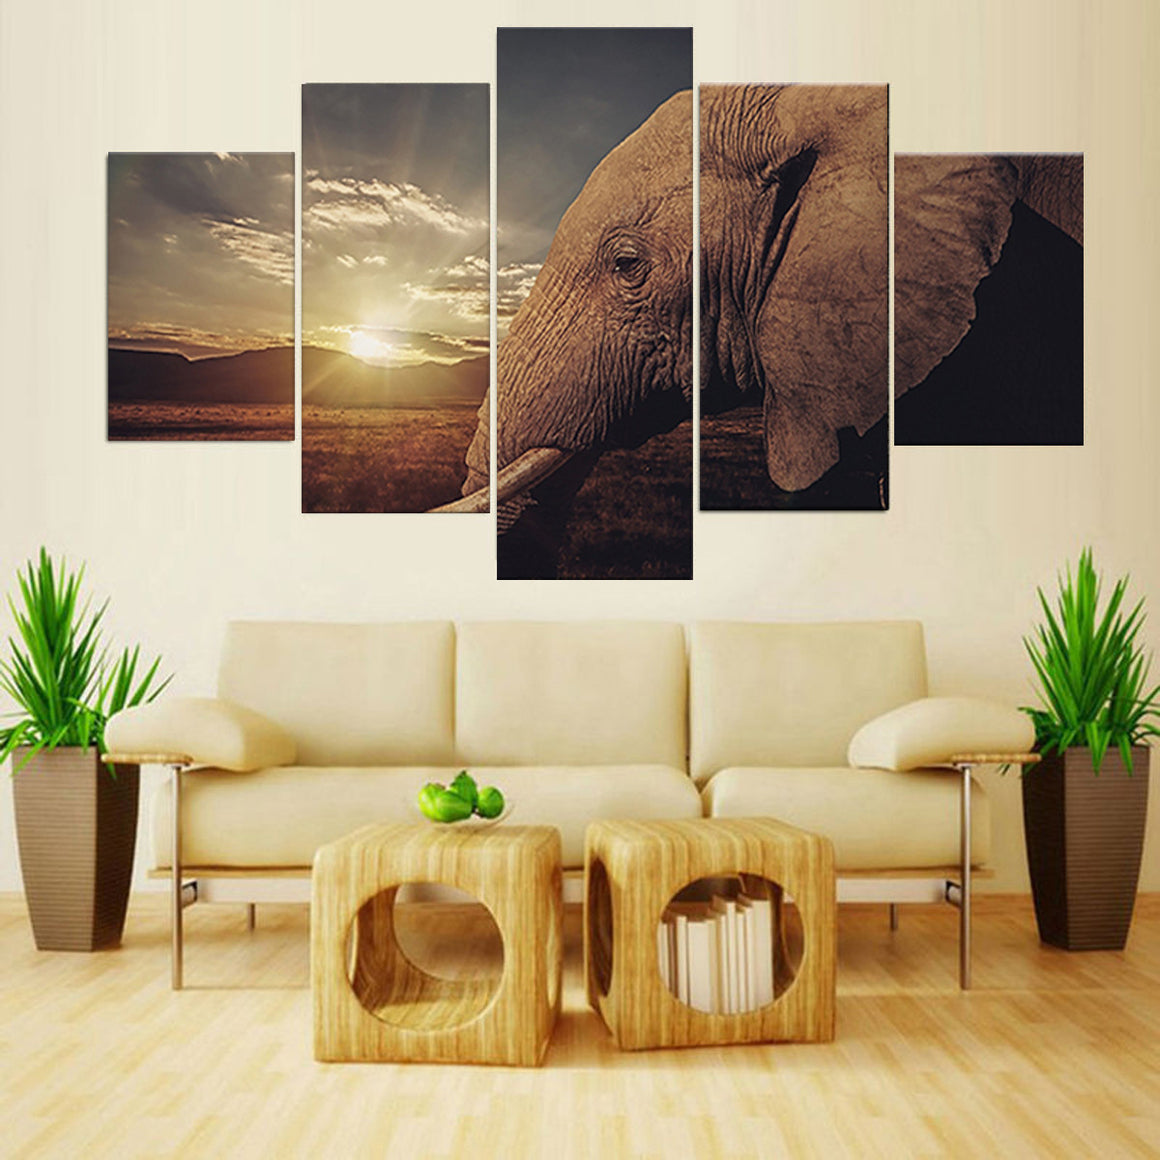 Sunset African Elephant Landscape Canvas